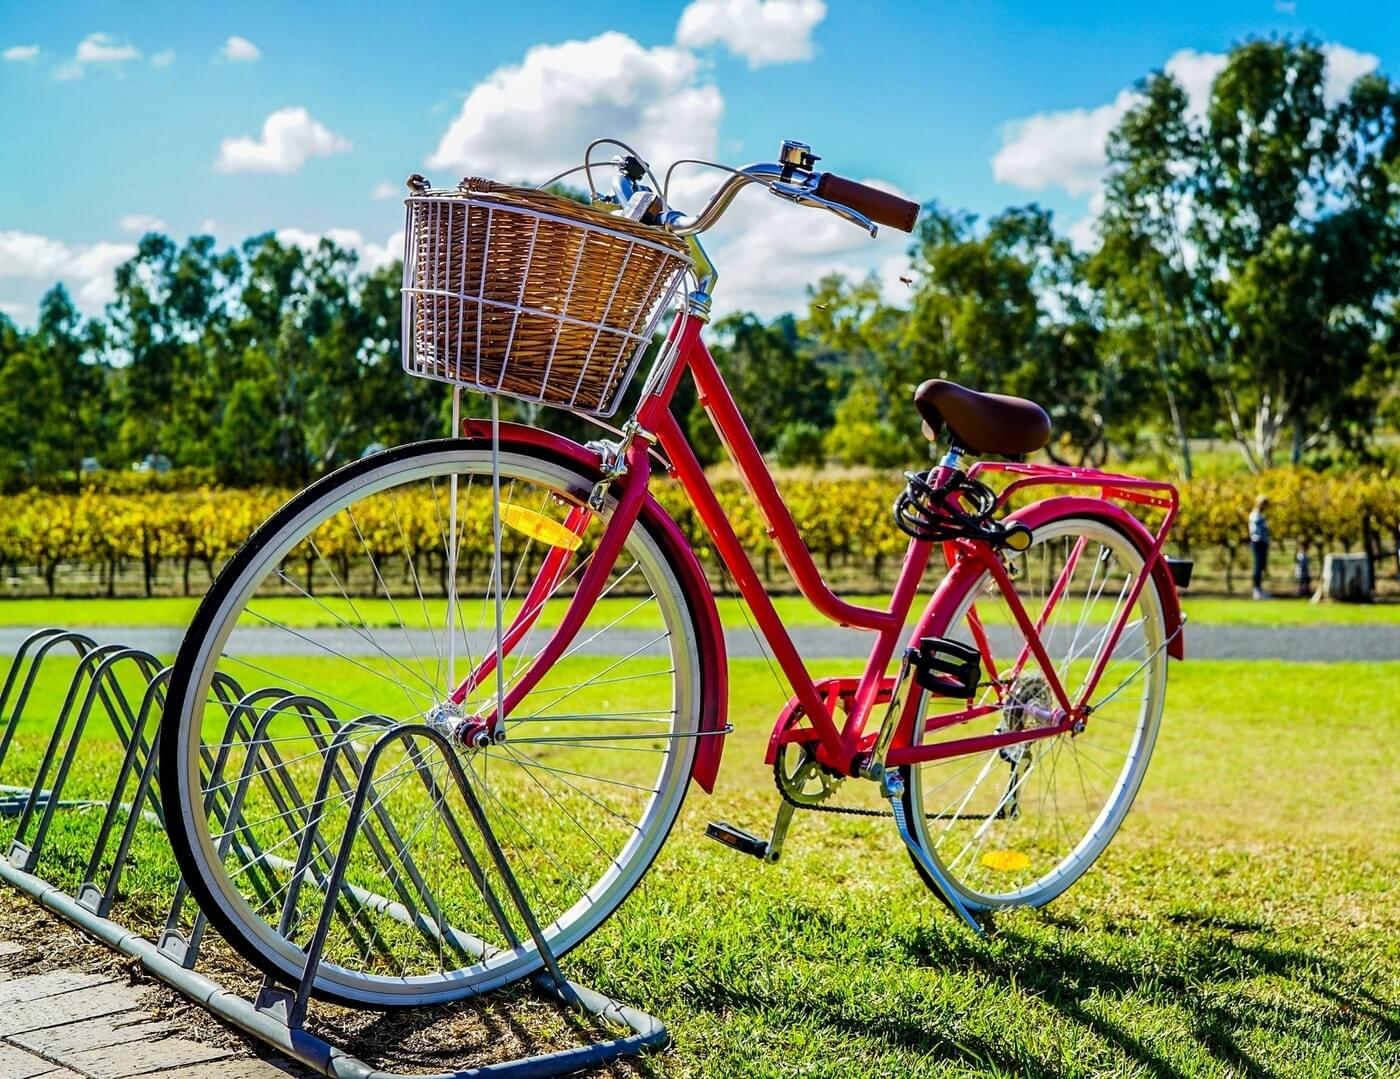 A picture of a red bike parked in a bike stand. Behind it is a green park with yellow flowers and tall green trees.